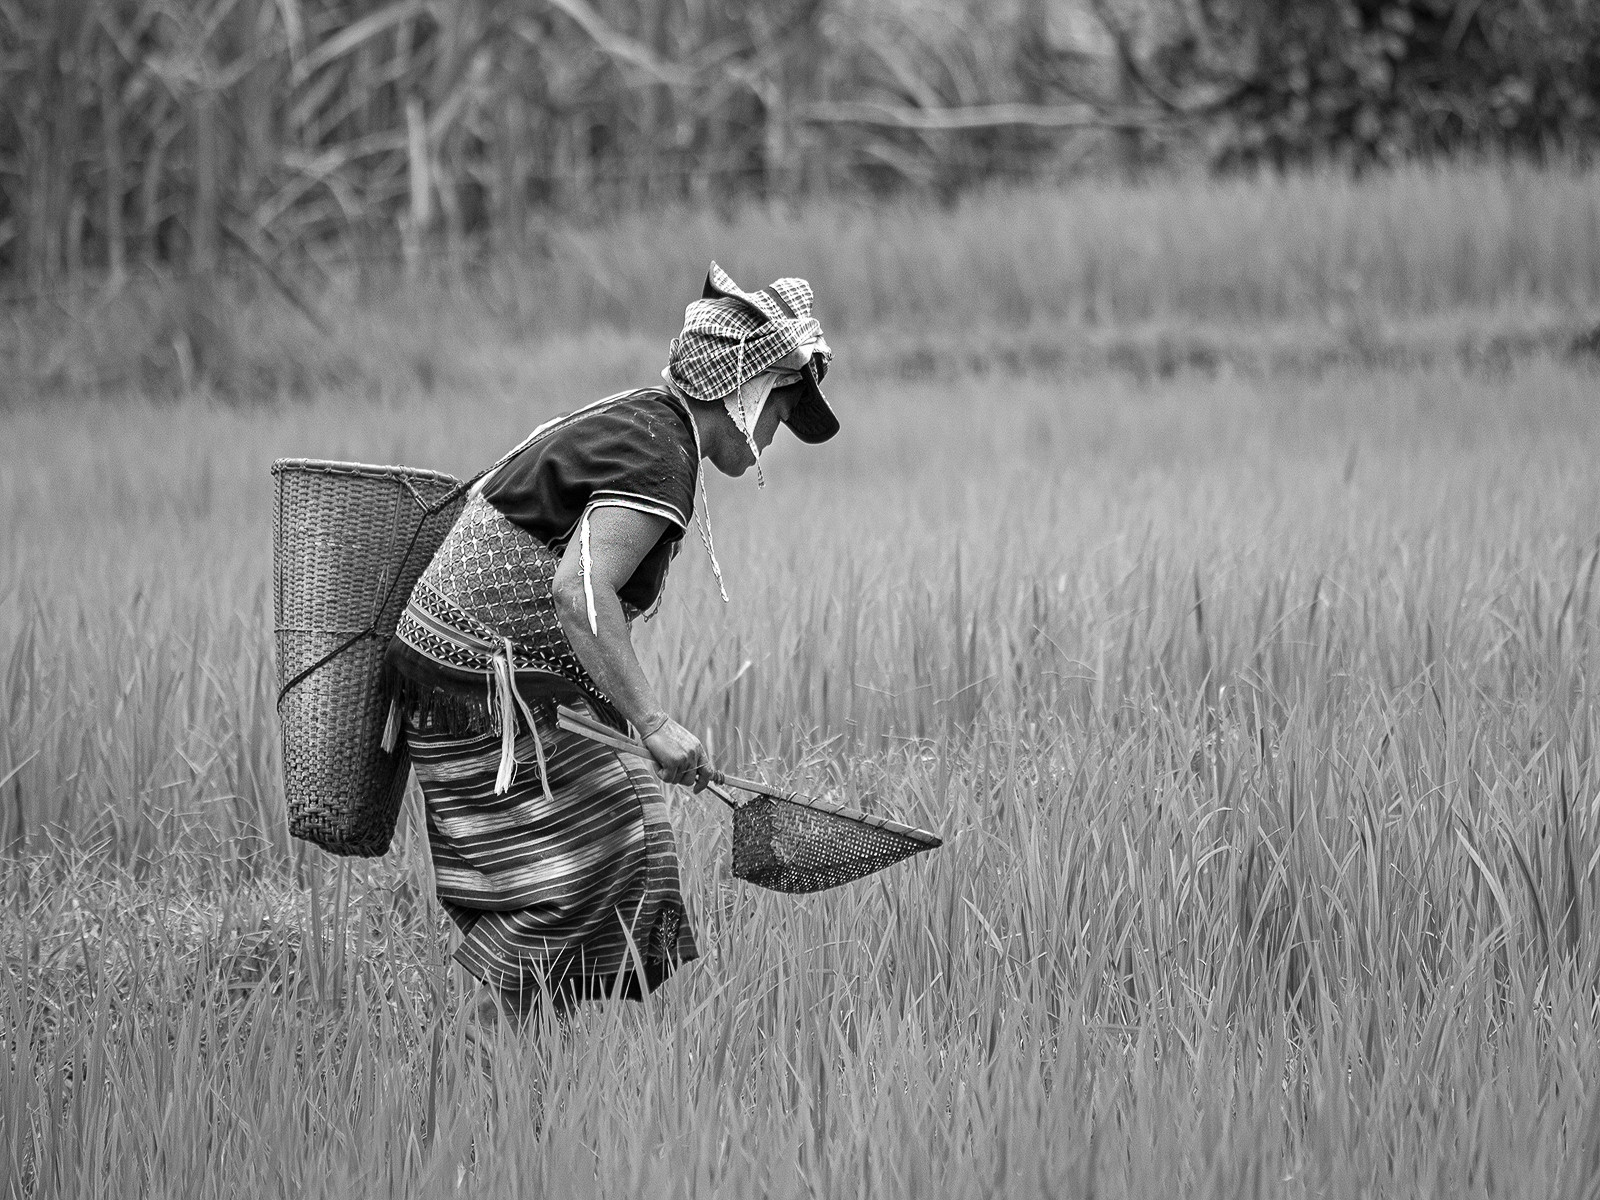 PDI - Working In The Fields by Julie Dickson (9 marks)